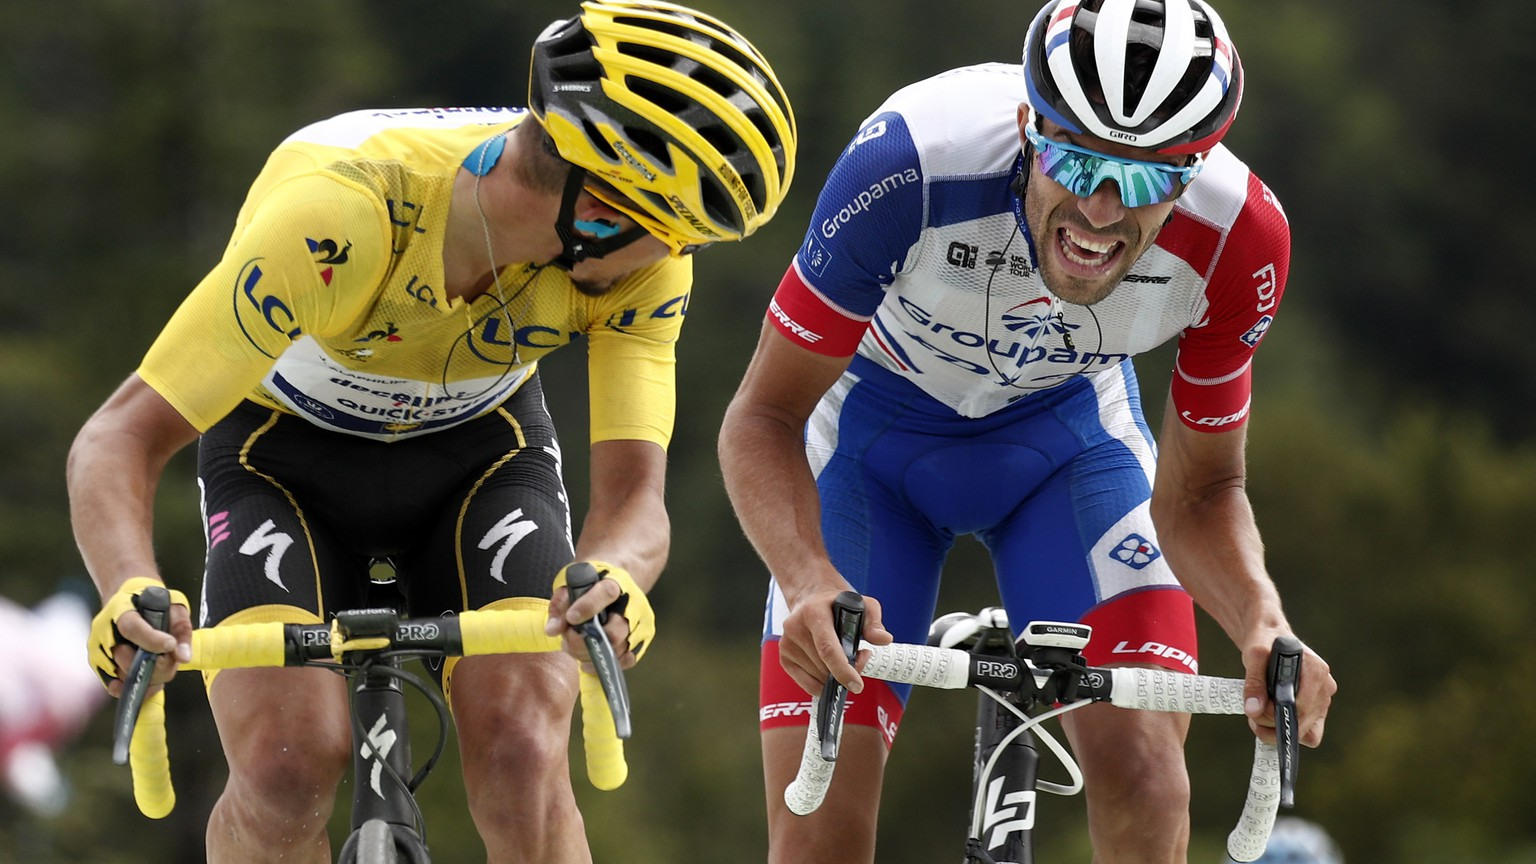 epa07710453 France's Julian Alaphilippe (L) of Deceuninck Quick Step team and France's Thibaut Pinot (R) of Groupama Fdj team cross the finish line  during the 6th stage of the 106th edition of the Tour de France cycling race over 160.5km between Mulhouse and La Planche des Belles Filles, France, 11 July 2019.  EPA/YOAN VALAT